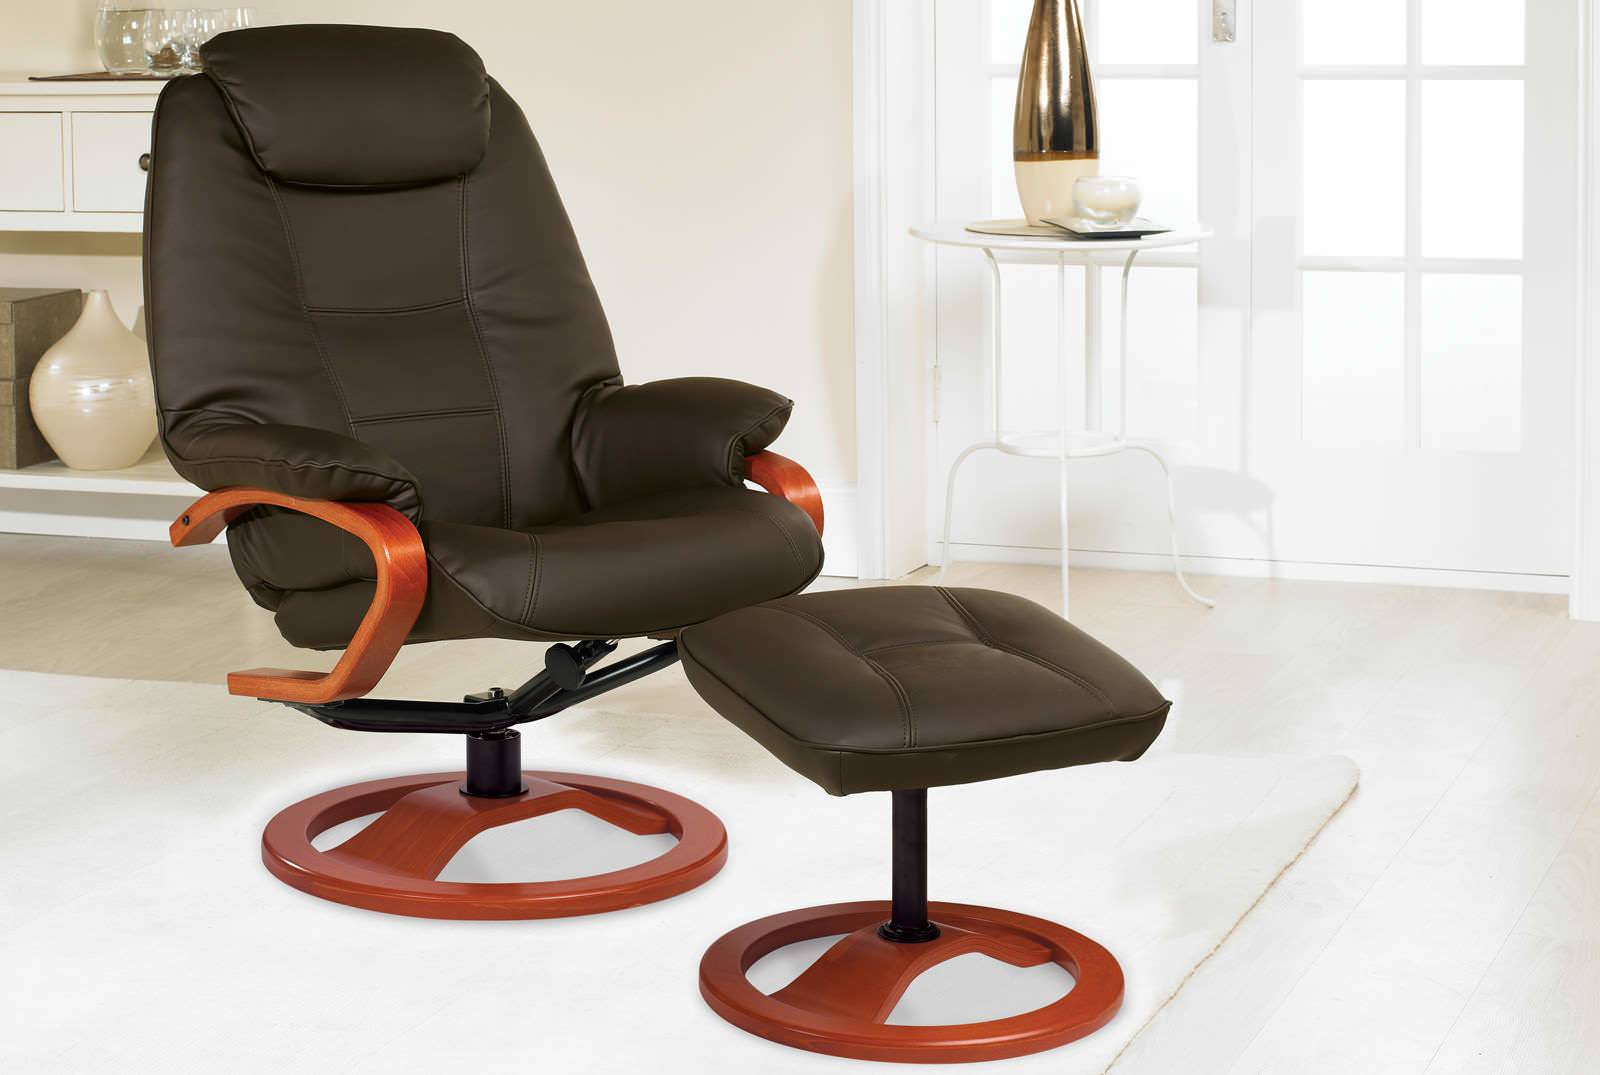 Haydock Luxury Reclining Swivel Chair HSL - Reclining swivel chair